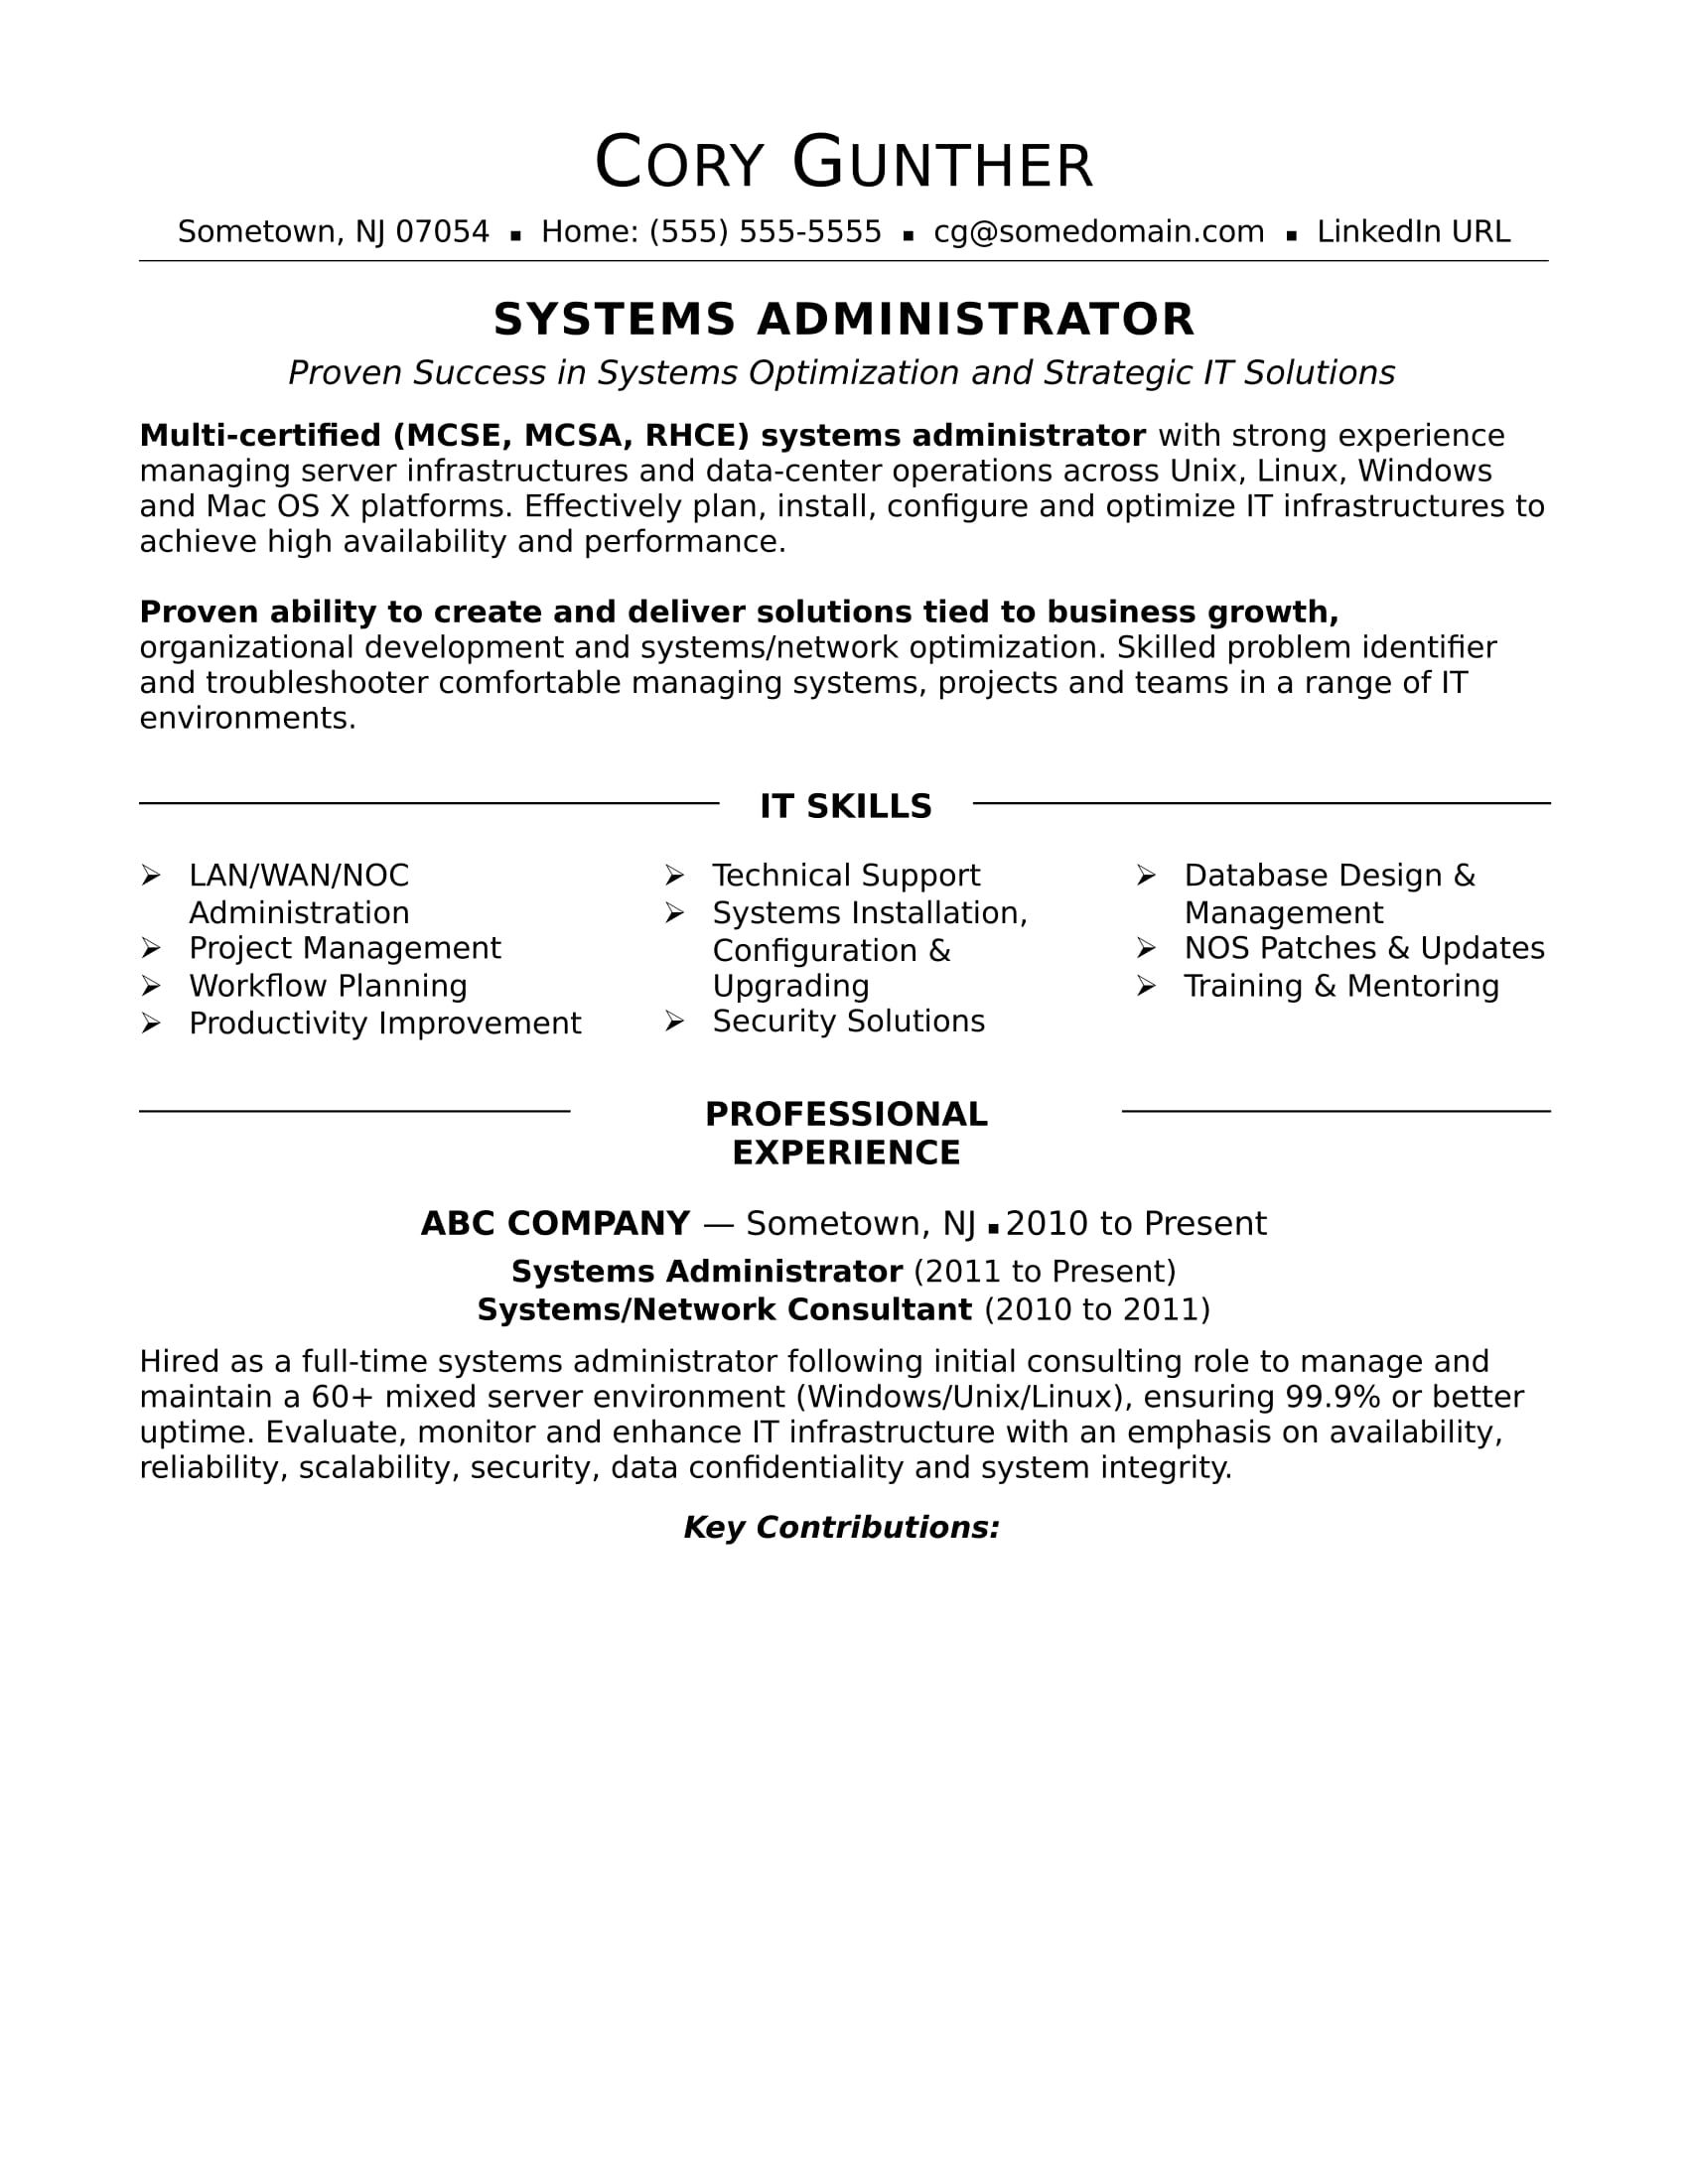 sample resume for an experienced systems administrator monster system un voisin trop Resume System Administrator Resume Sample Download